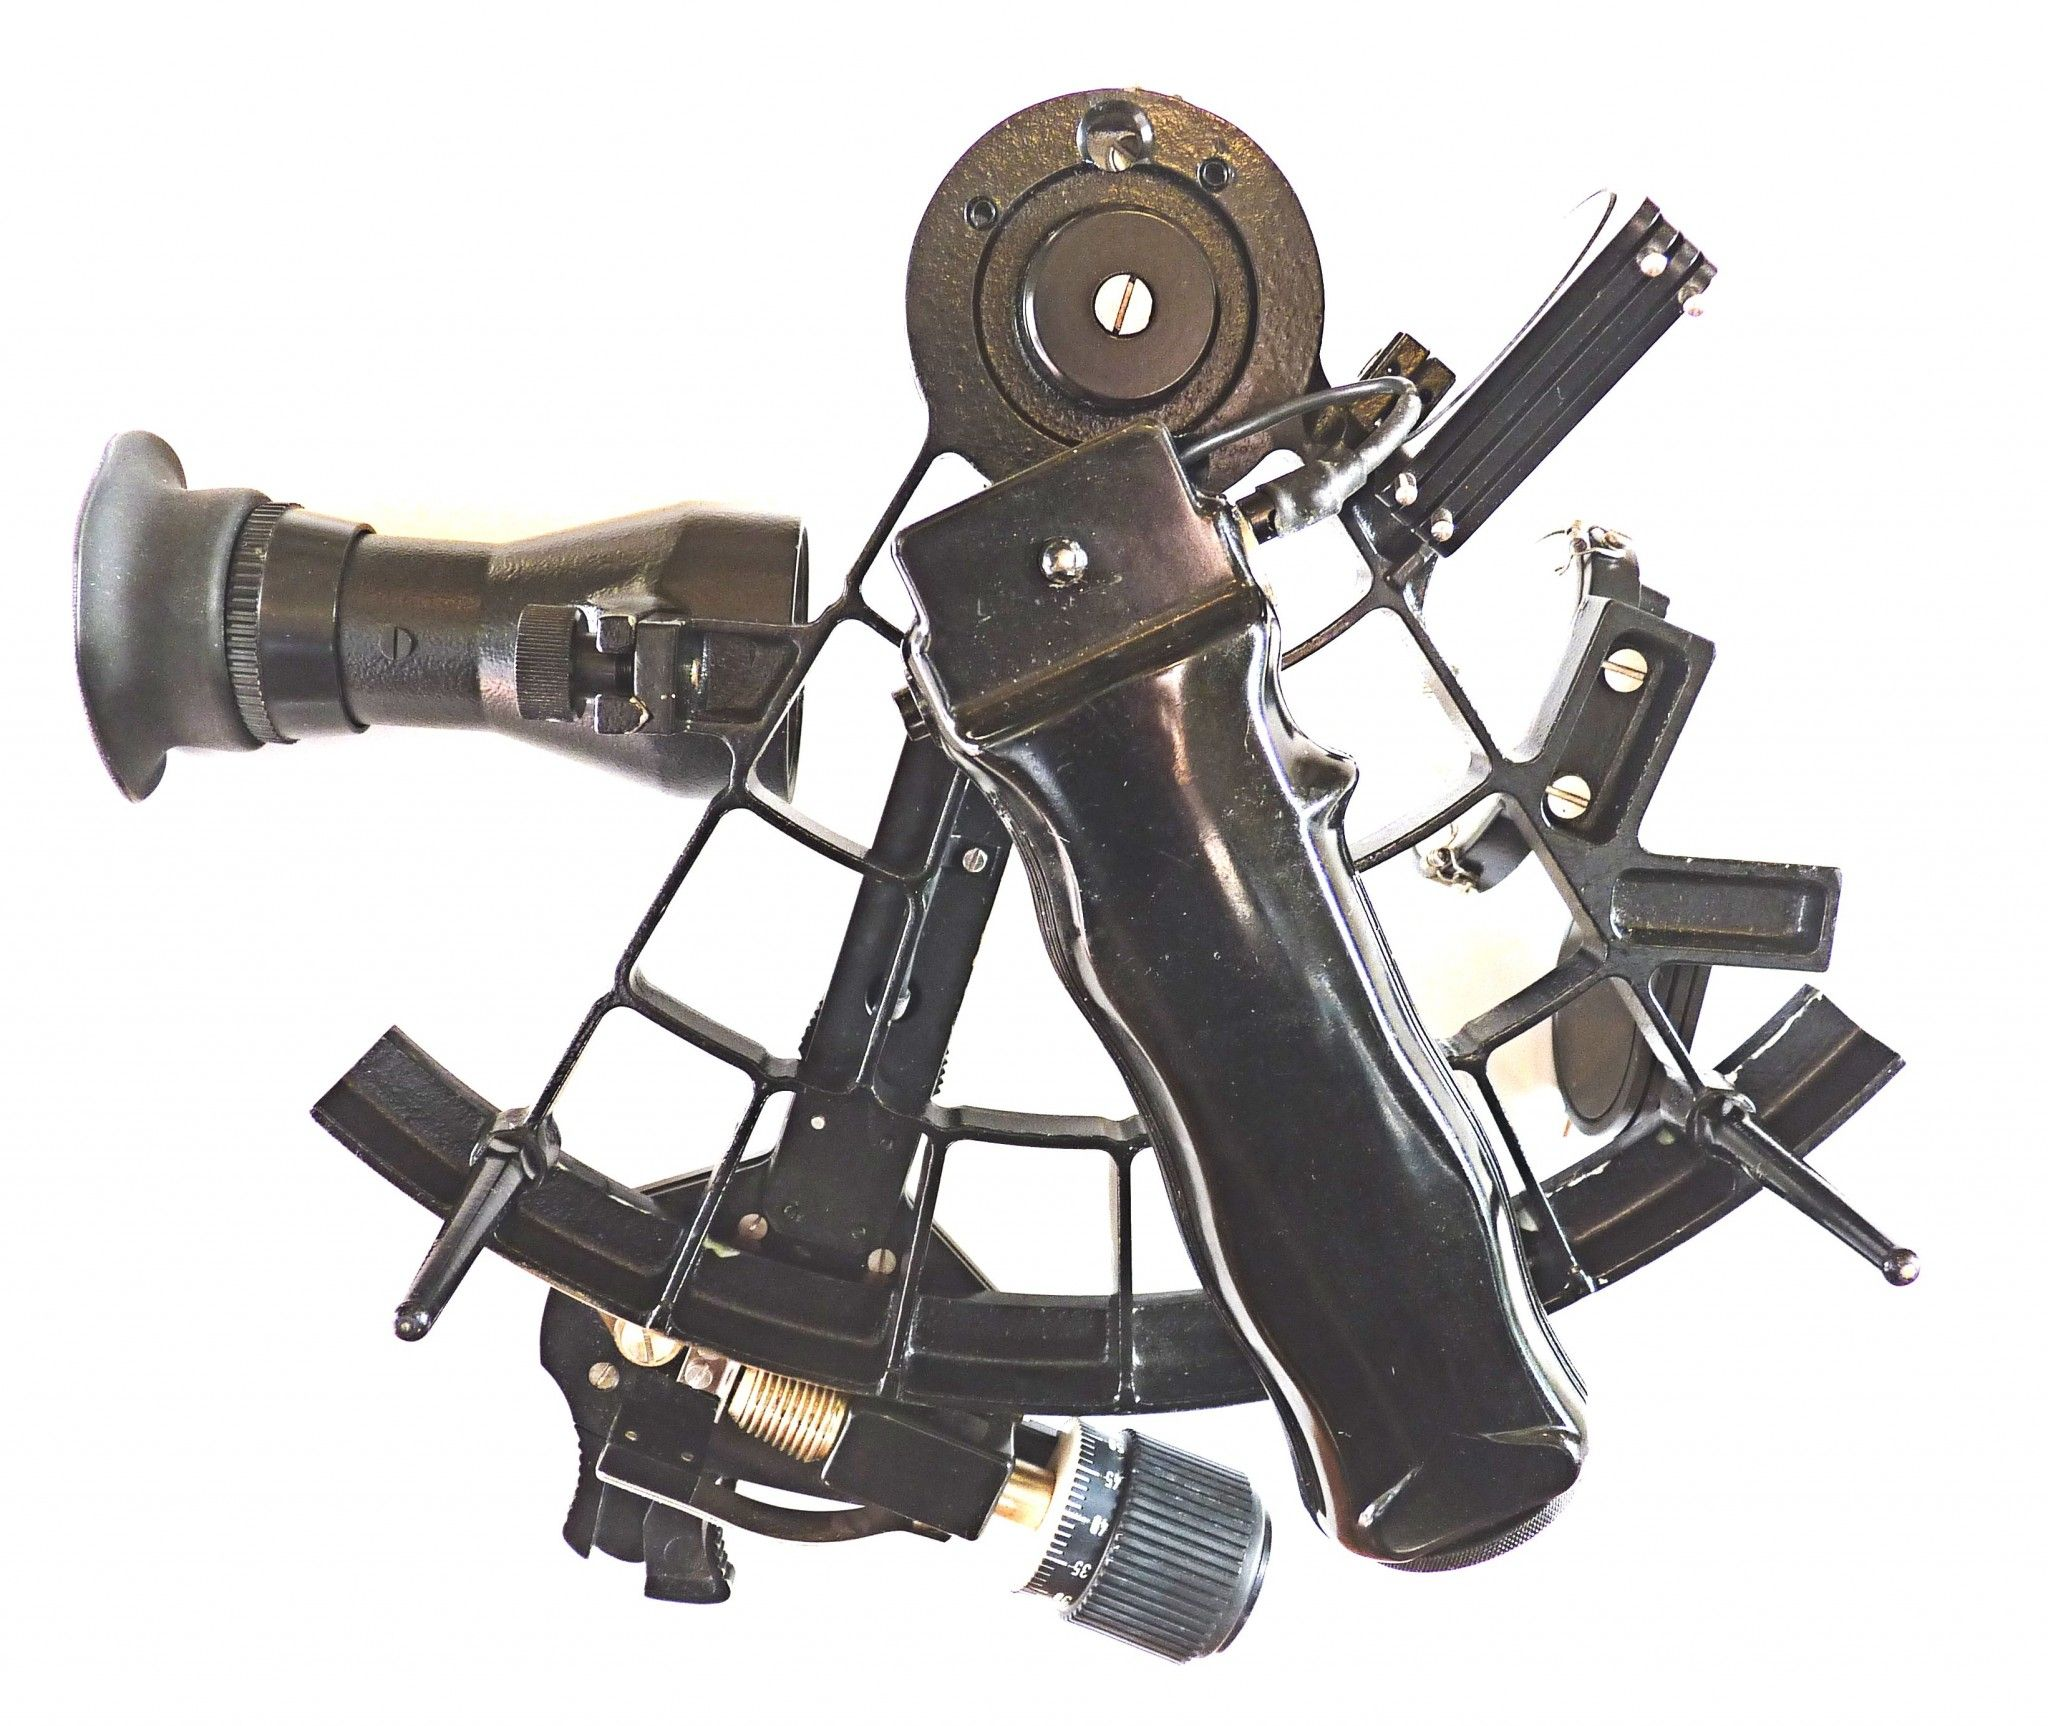 back of sextant with 4x40 scope mounted image